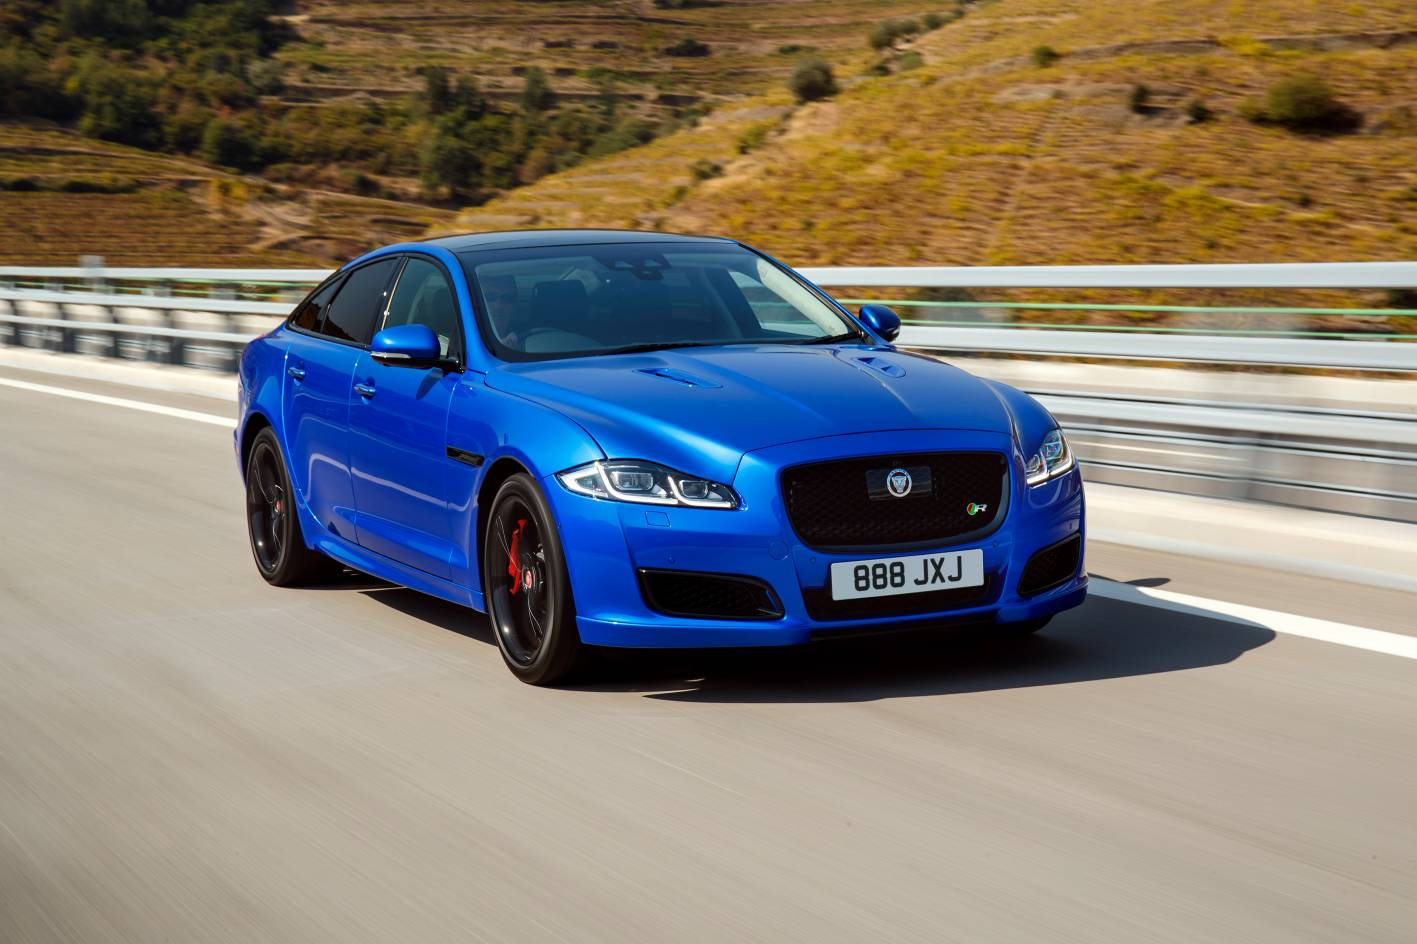 jaguar xj refreshed for 2018 gets 423kw xjr575 range topper. Black Bedroom Furniture Sets. Home Design Ideas